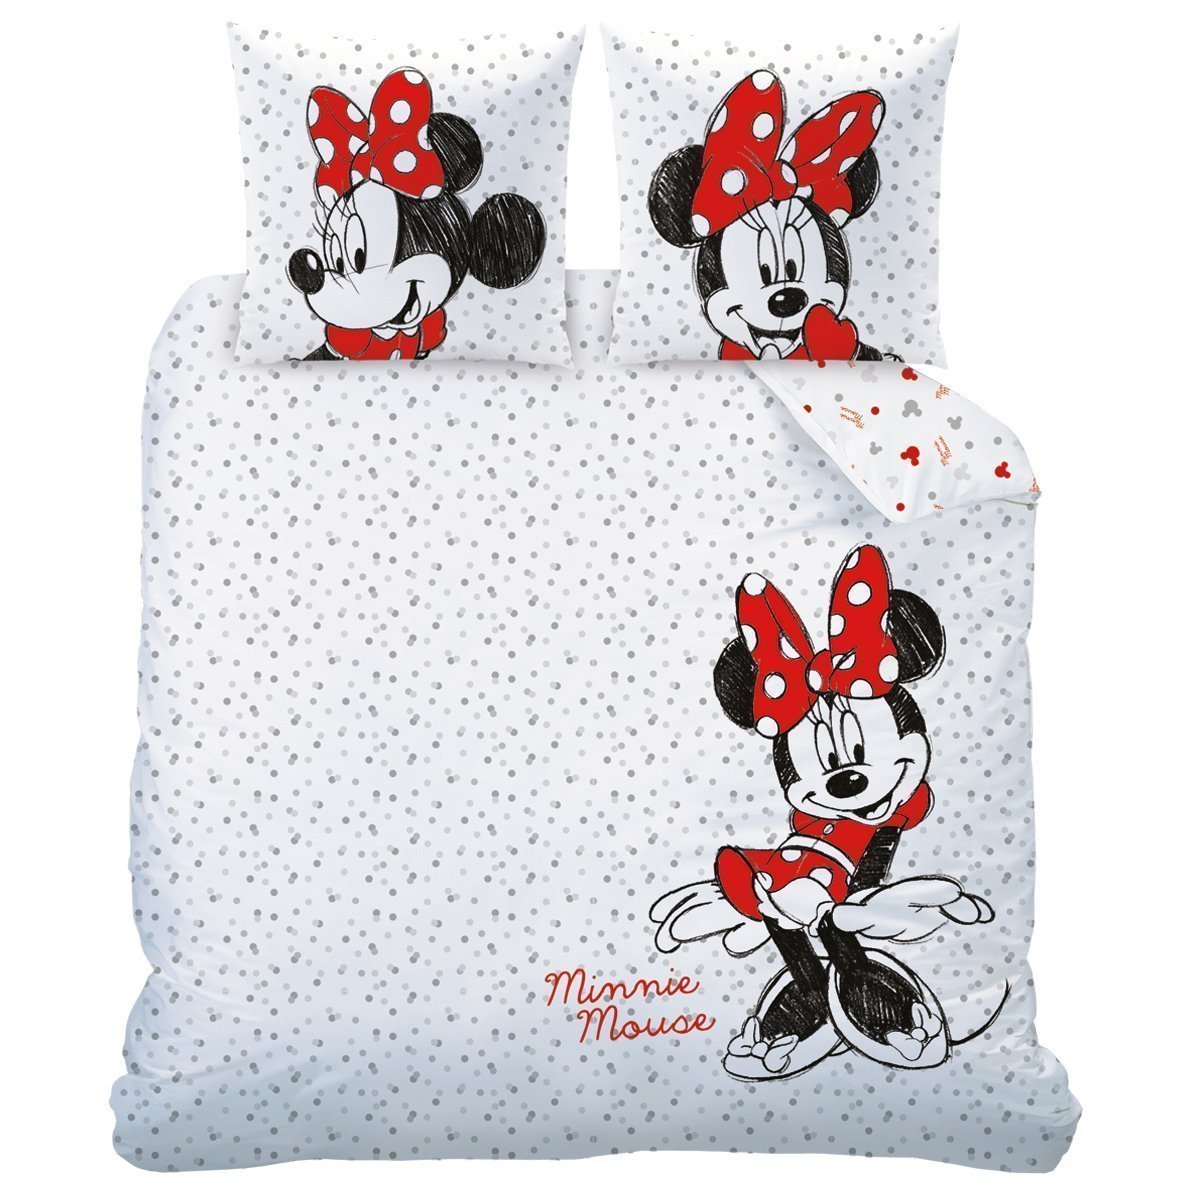 parure de lit double minnie drawing pour lit 2 personnes. Black Bedroom Furniture Sets. Home Design Ideas